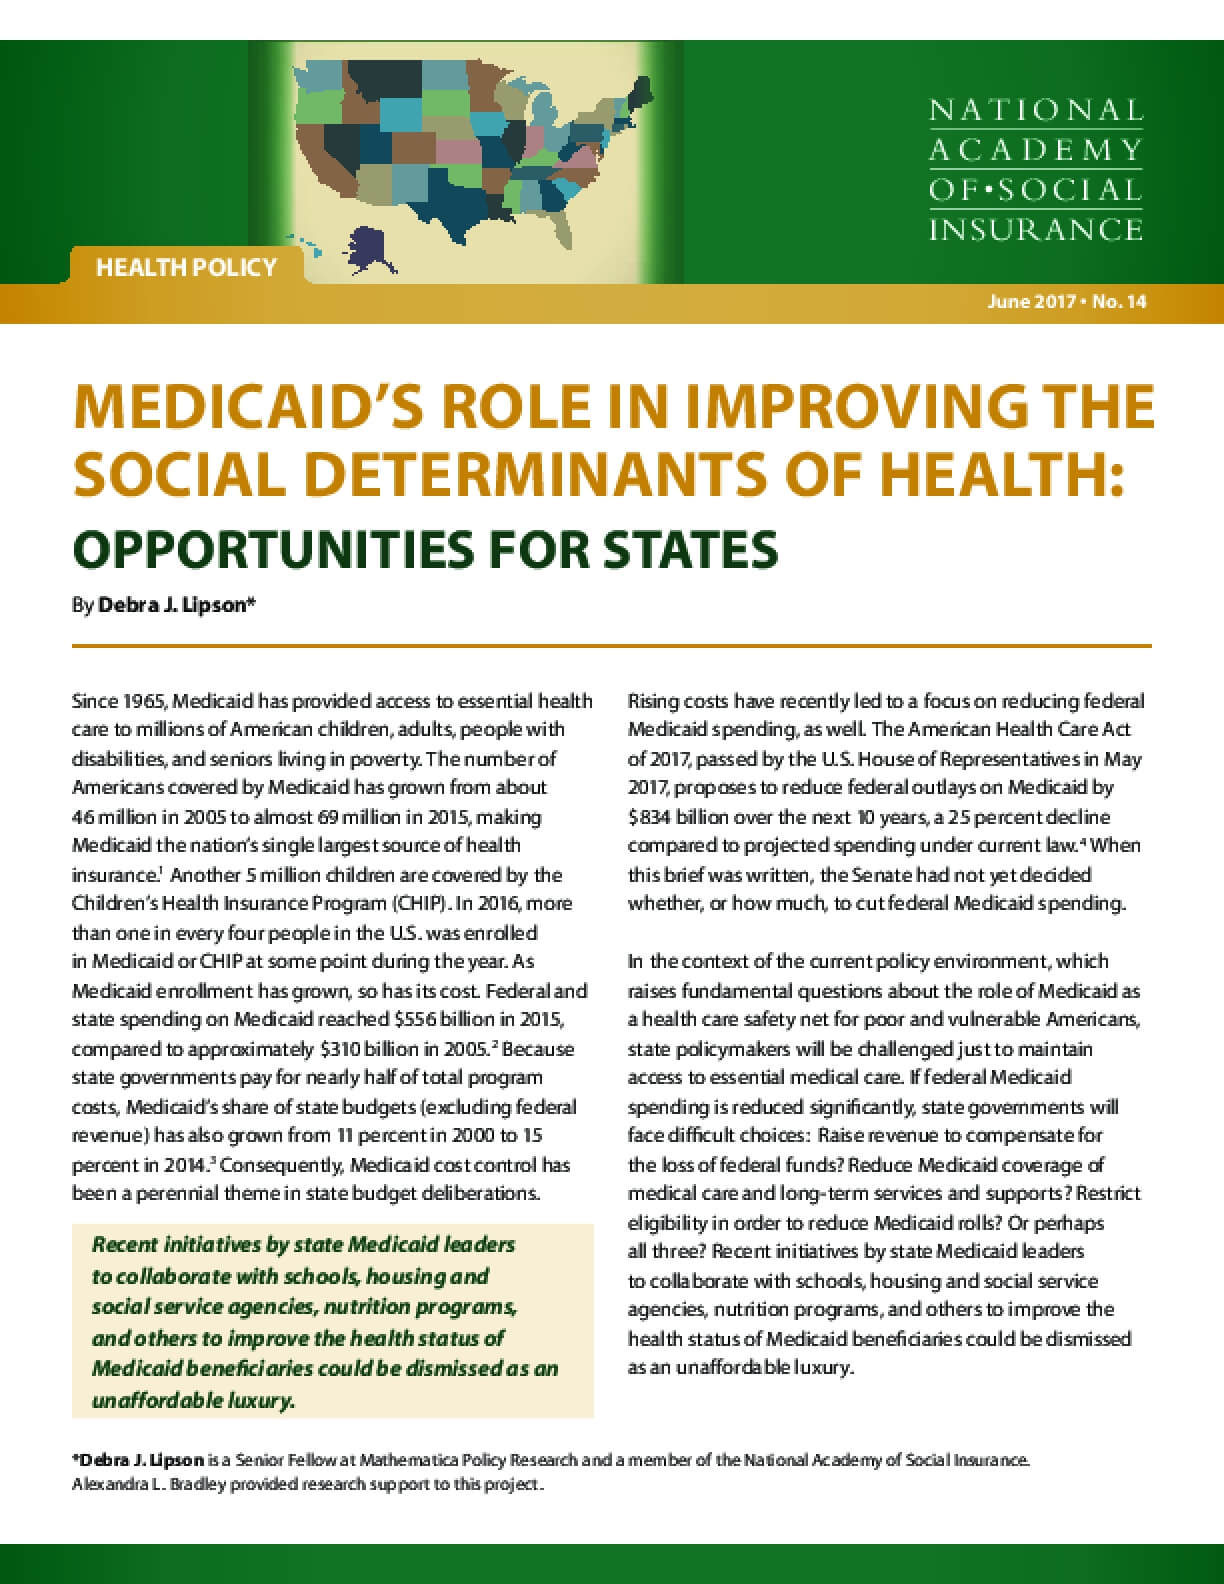 Medicaid's Role in Improving the Social Determinants of Health: Opportunities for States